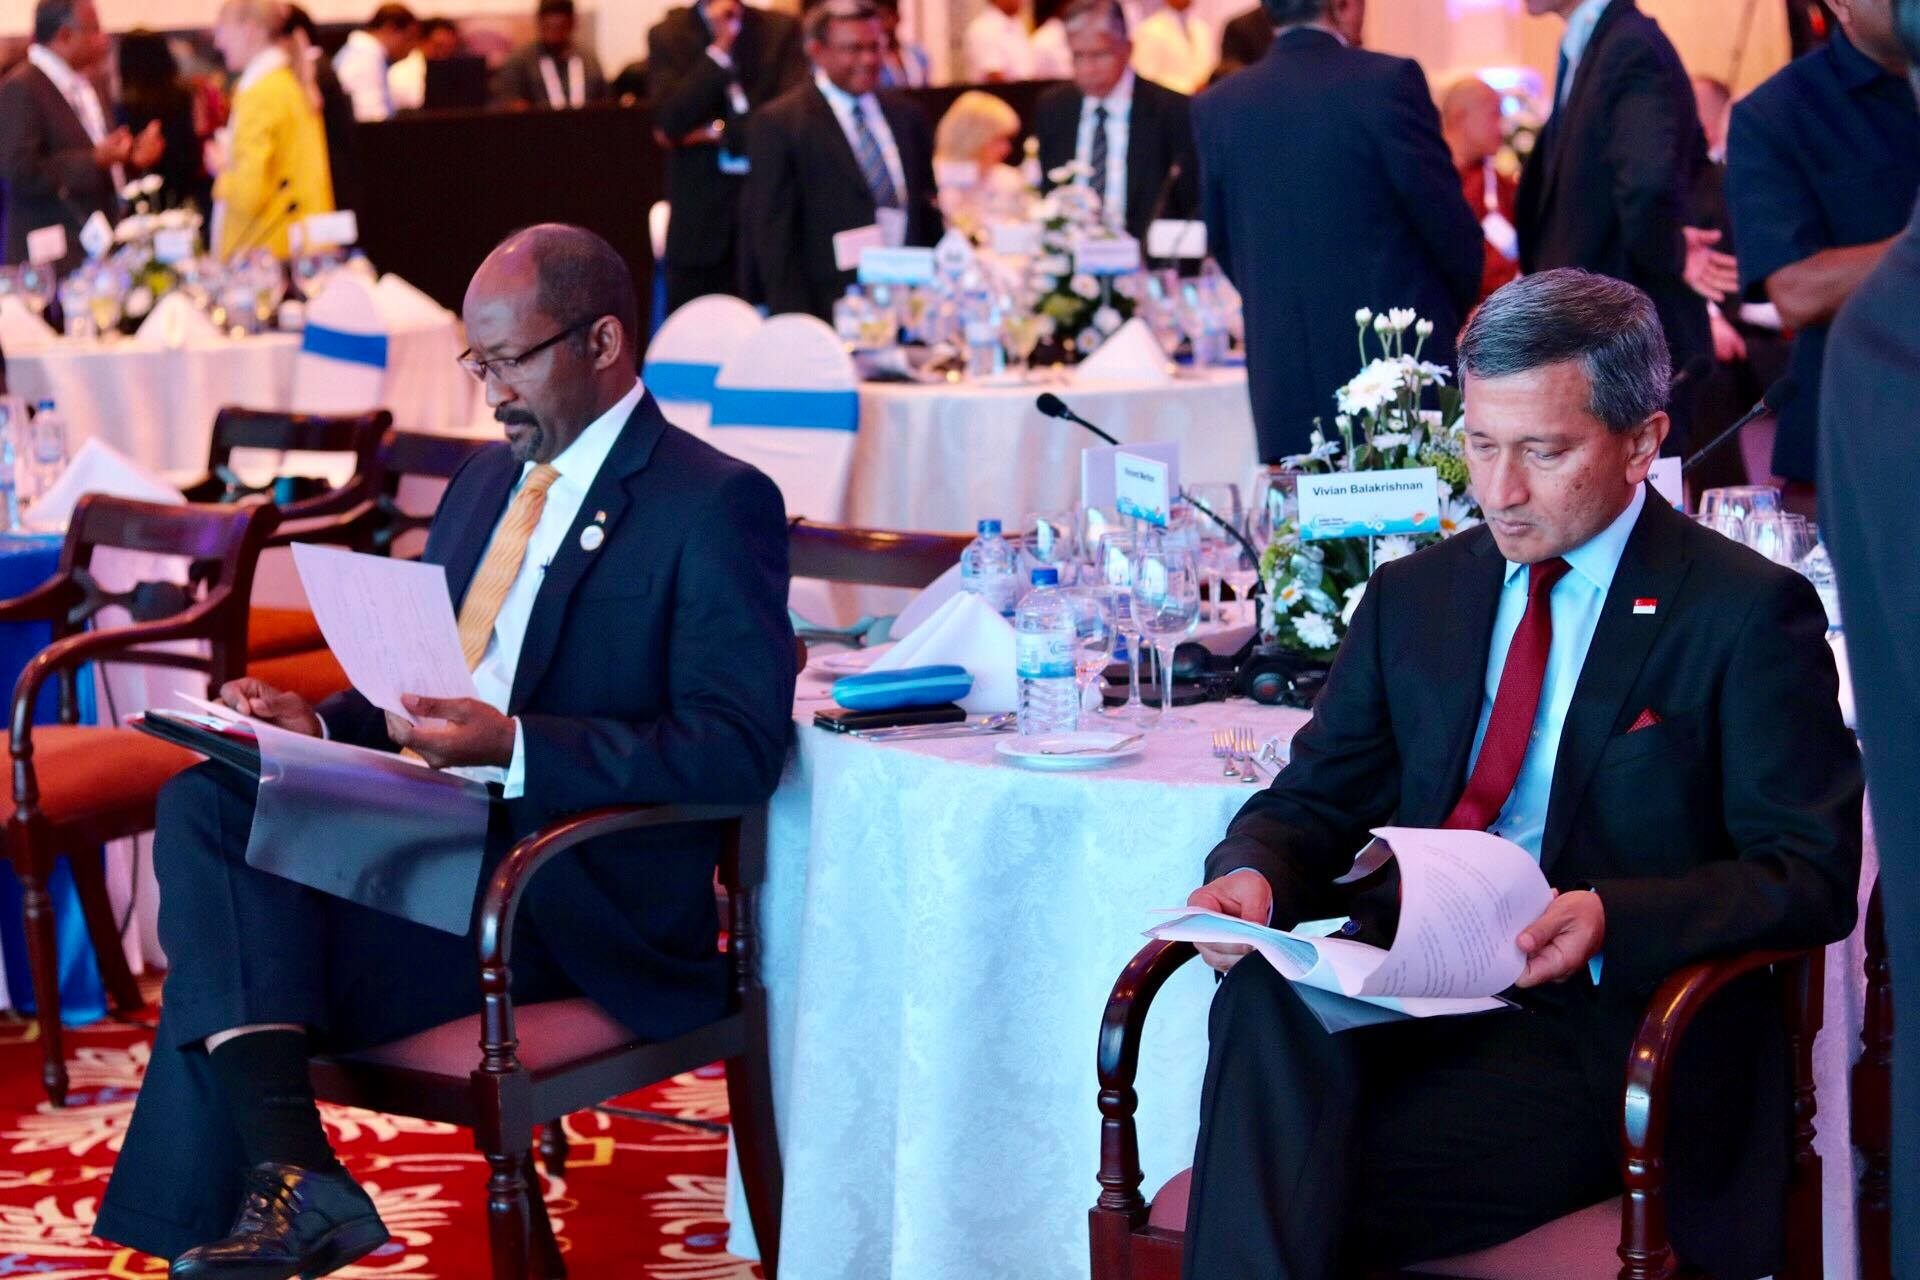 Preparing our speech, with Seychelles Vice President Vincent Meriton